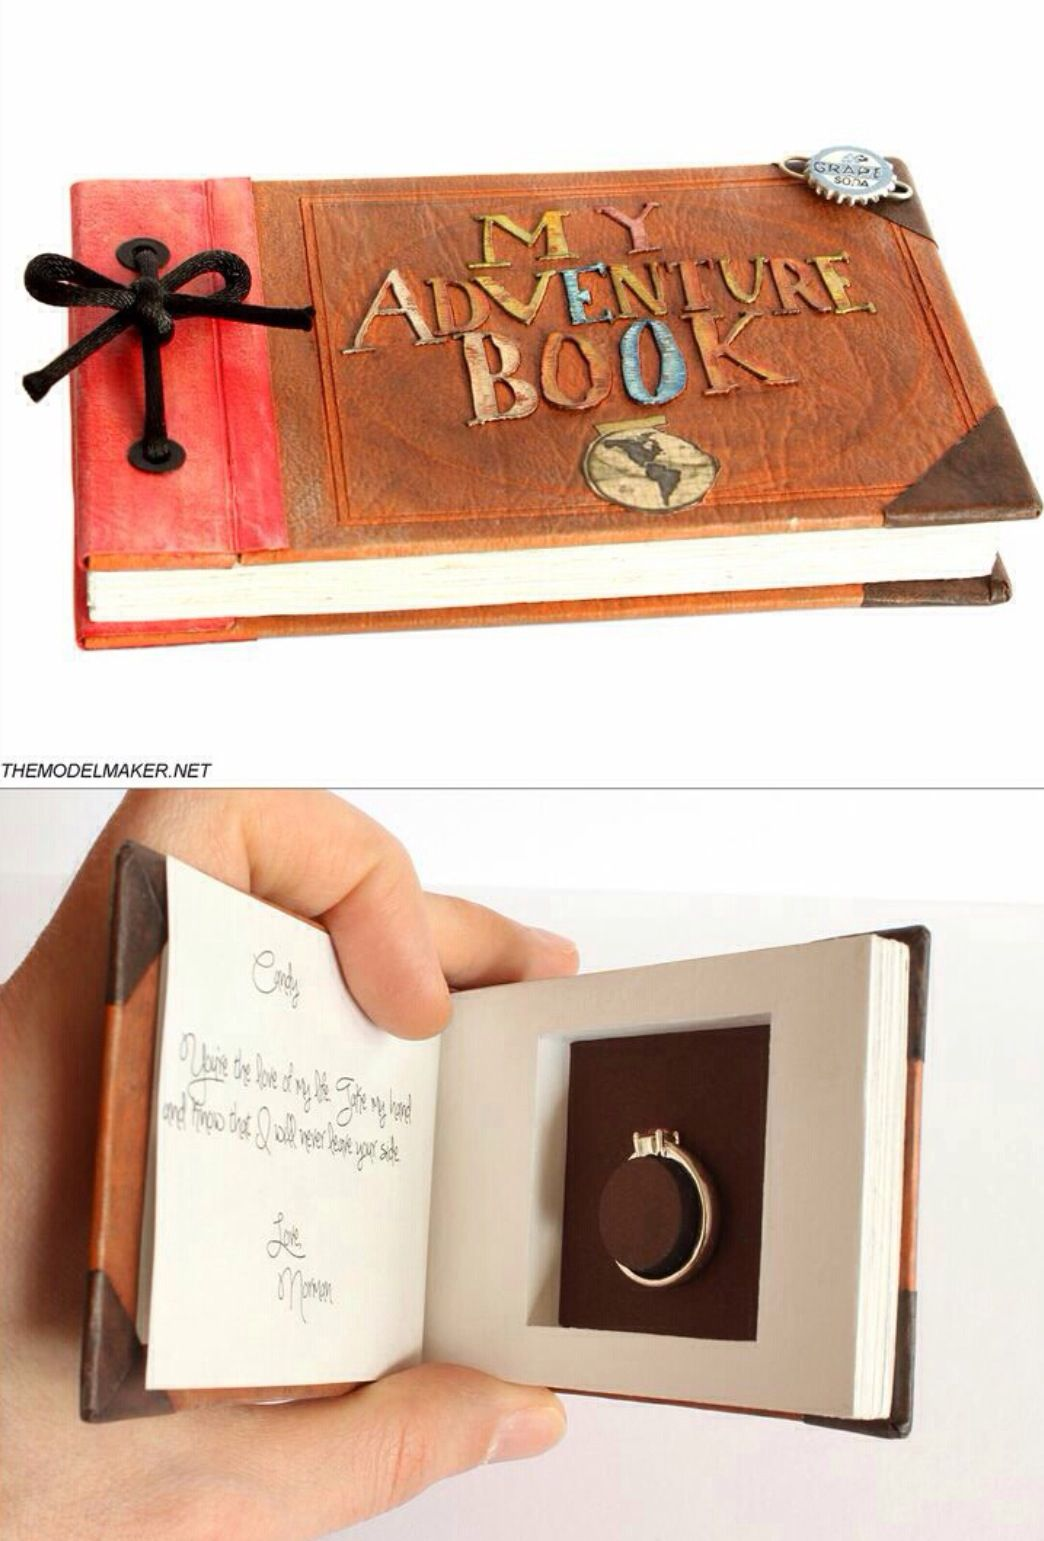 such an adorable idea!! (how to get him to propose how to make